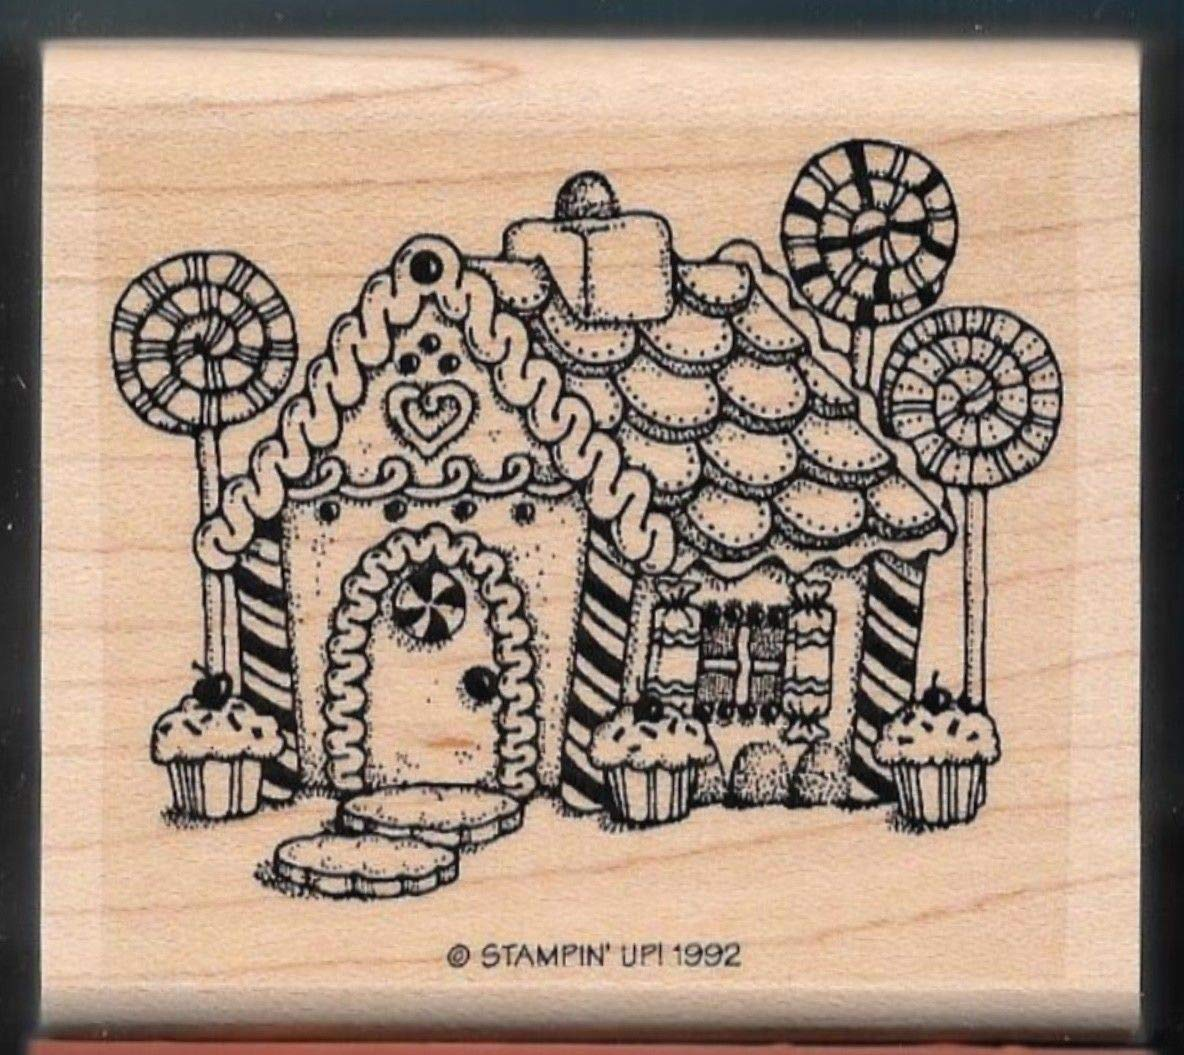 Rubber Stamp Frames Candy Cane Christmas Gingerbread House Home 1992 New Rubber Stamp